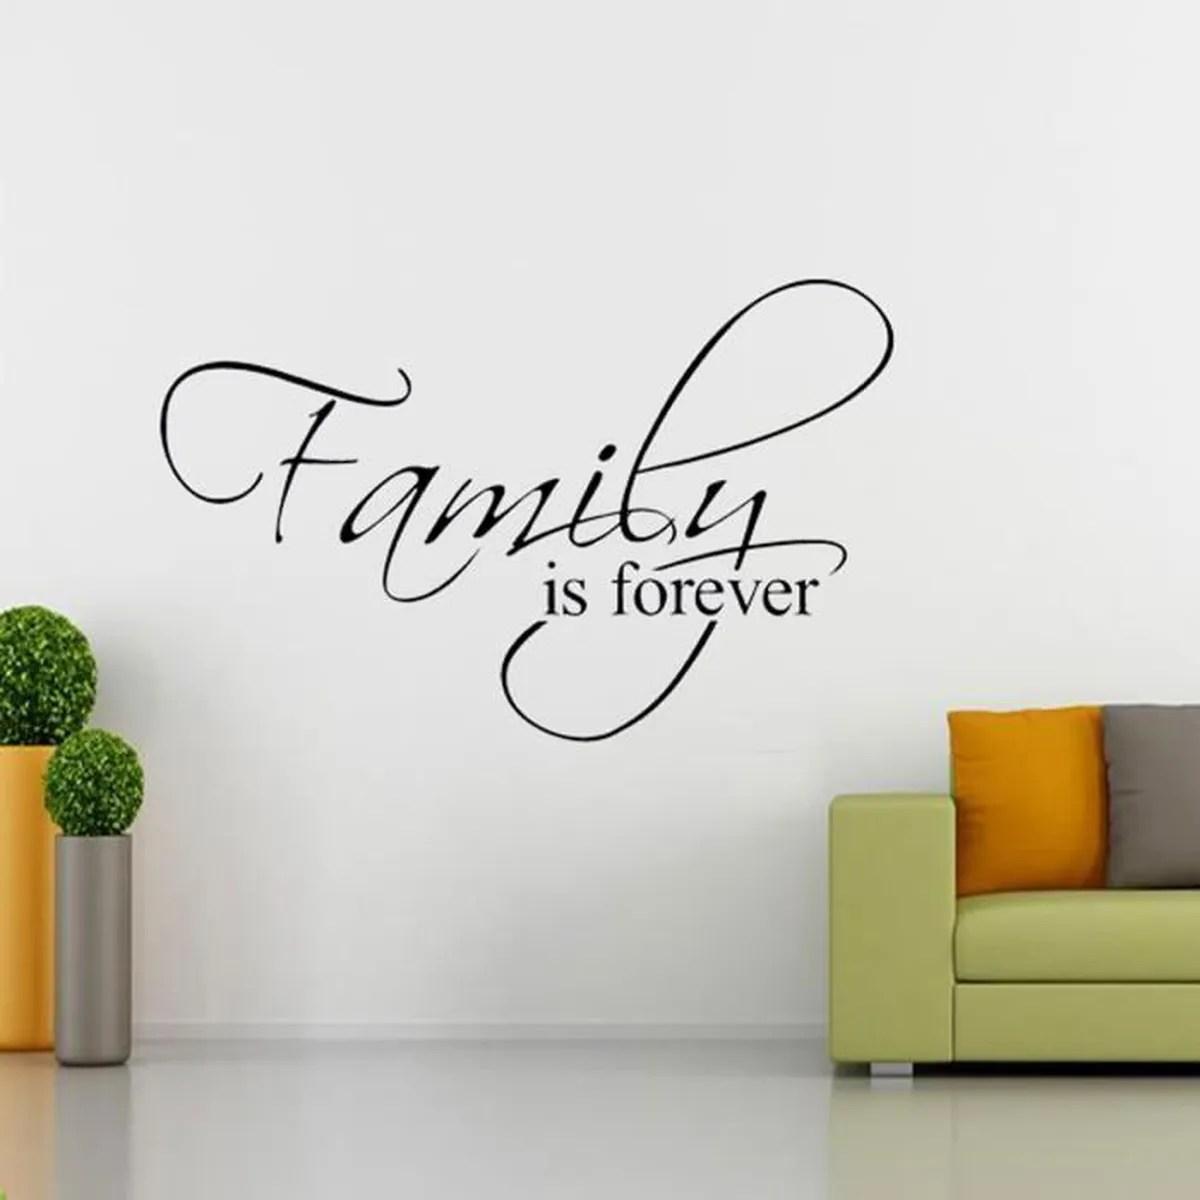 Decoration Lettre Murale Sticker Family Is Forever Autocollant Lettre Mural Amoriable Déco